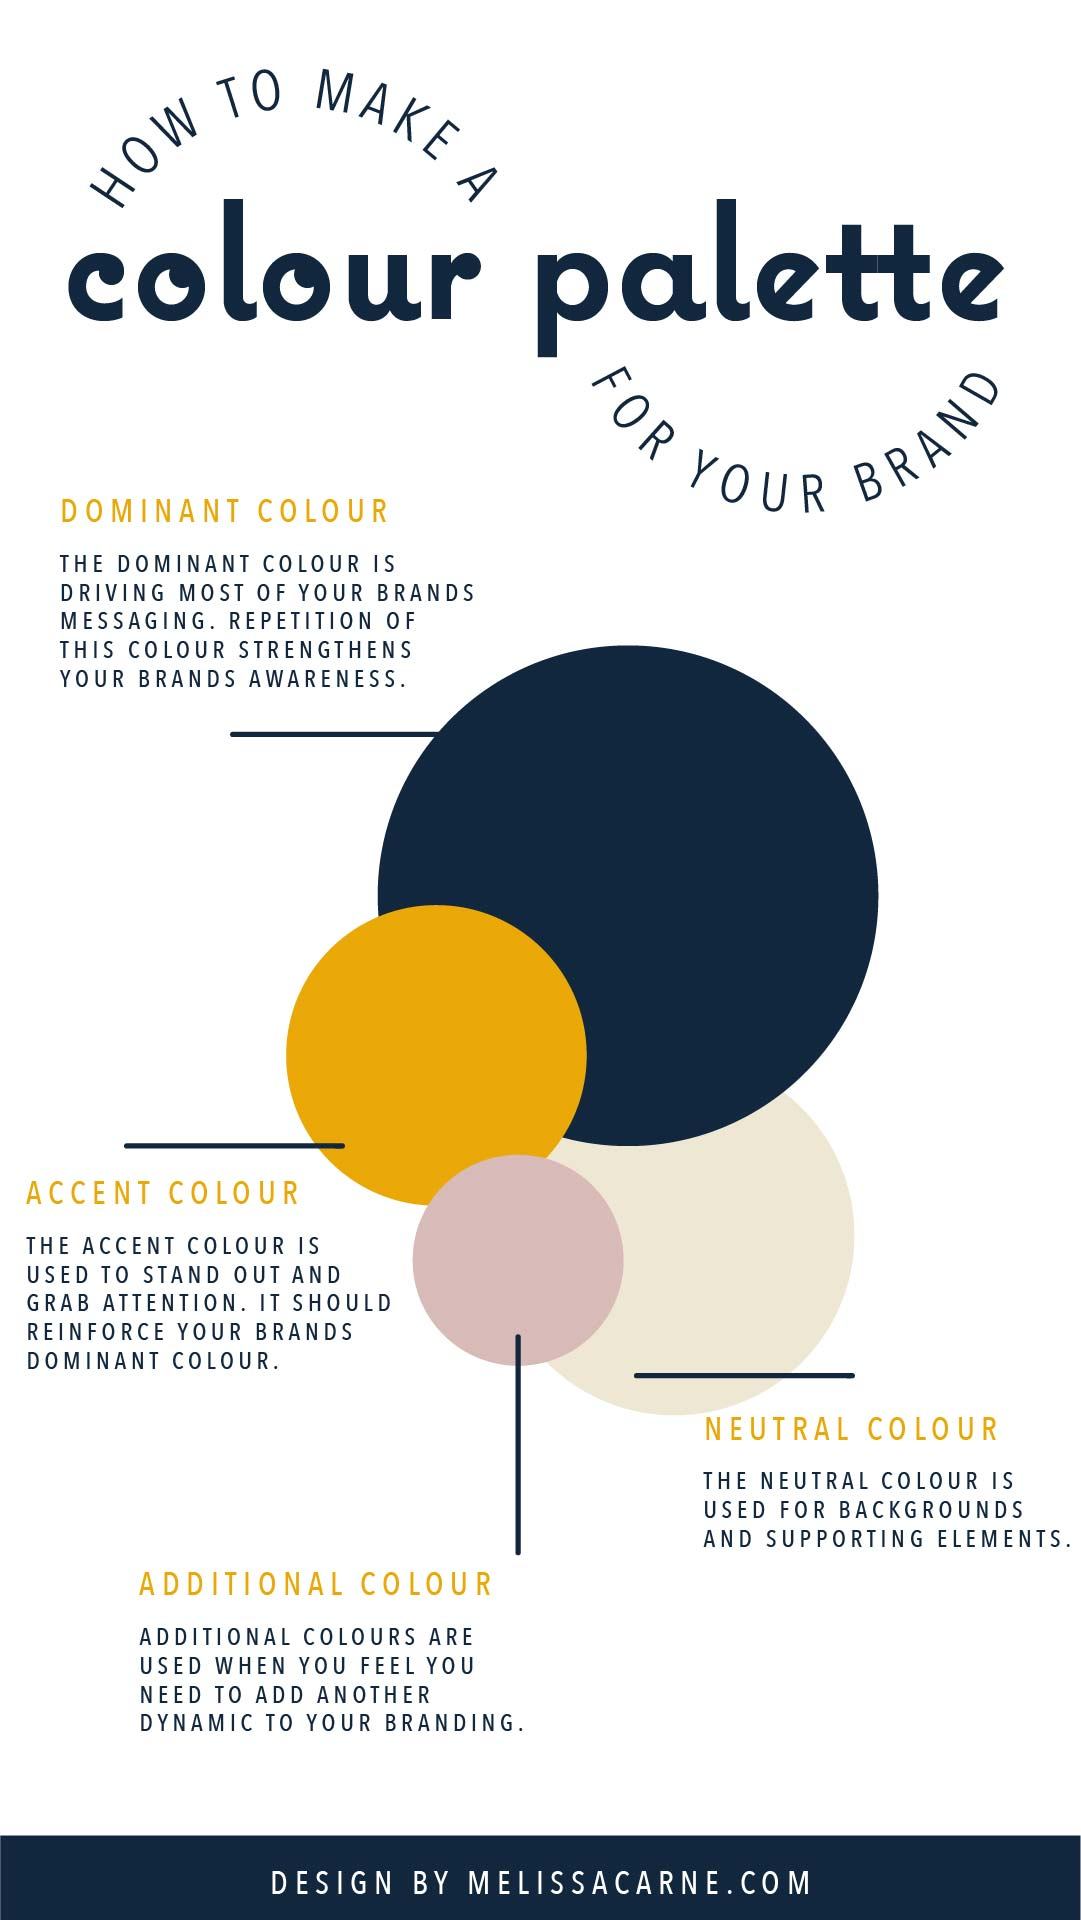 colour palette anlysis and hierarchy for your brand